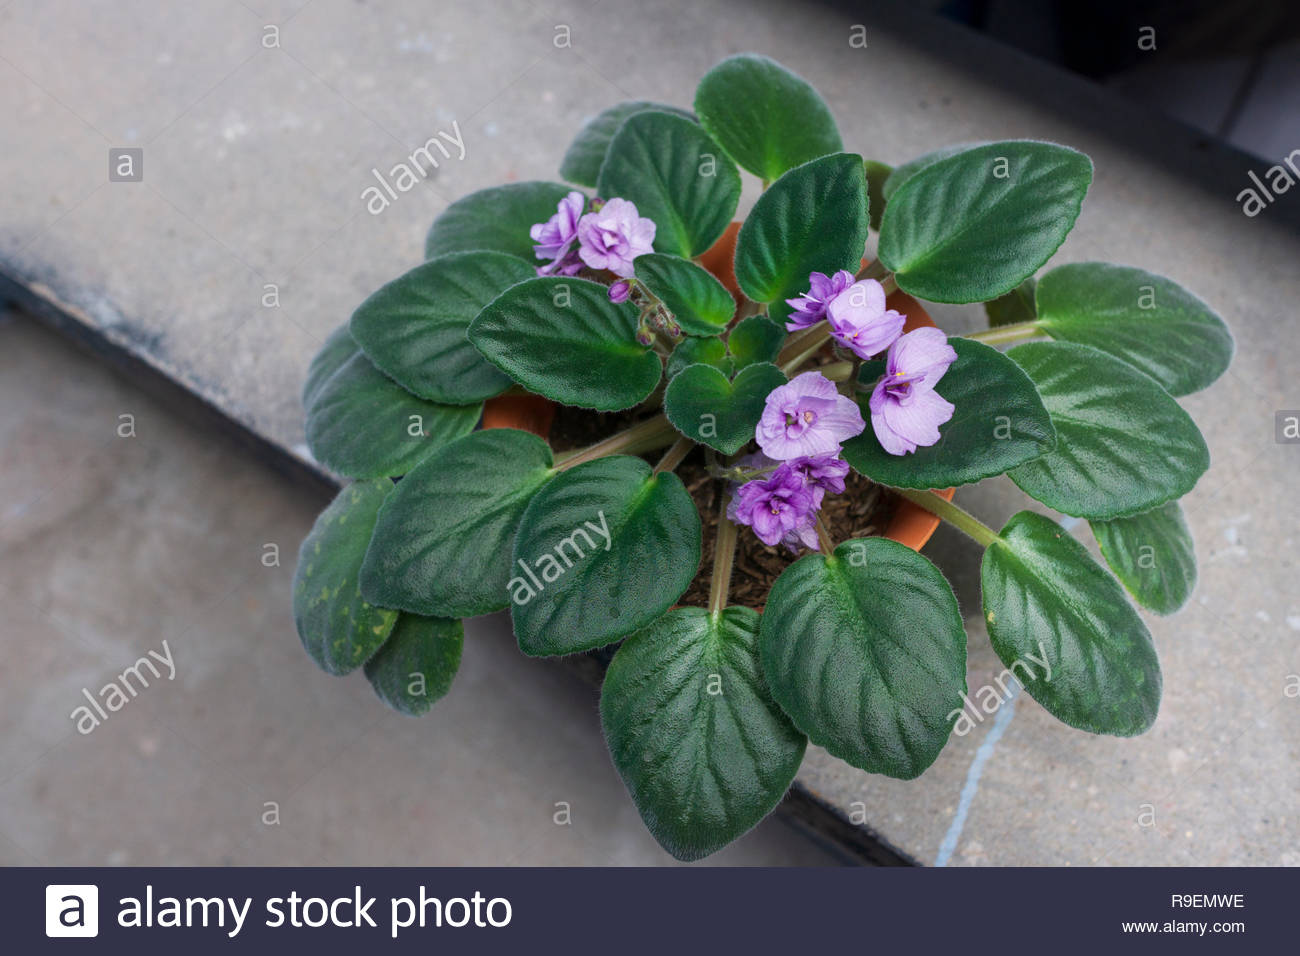 an-african-violet-plant-grown-from-a-lea